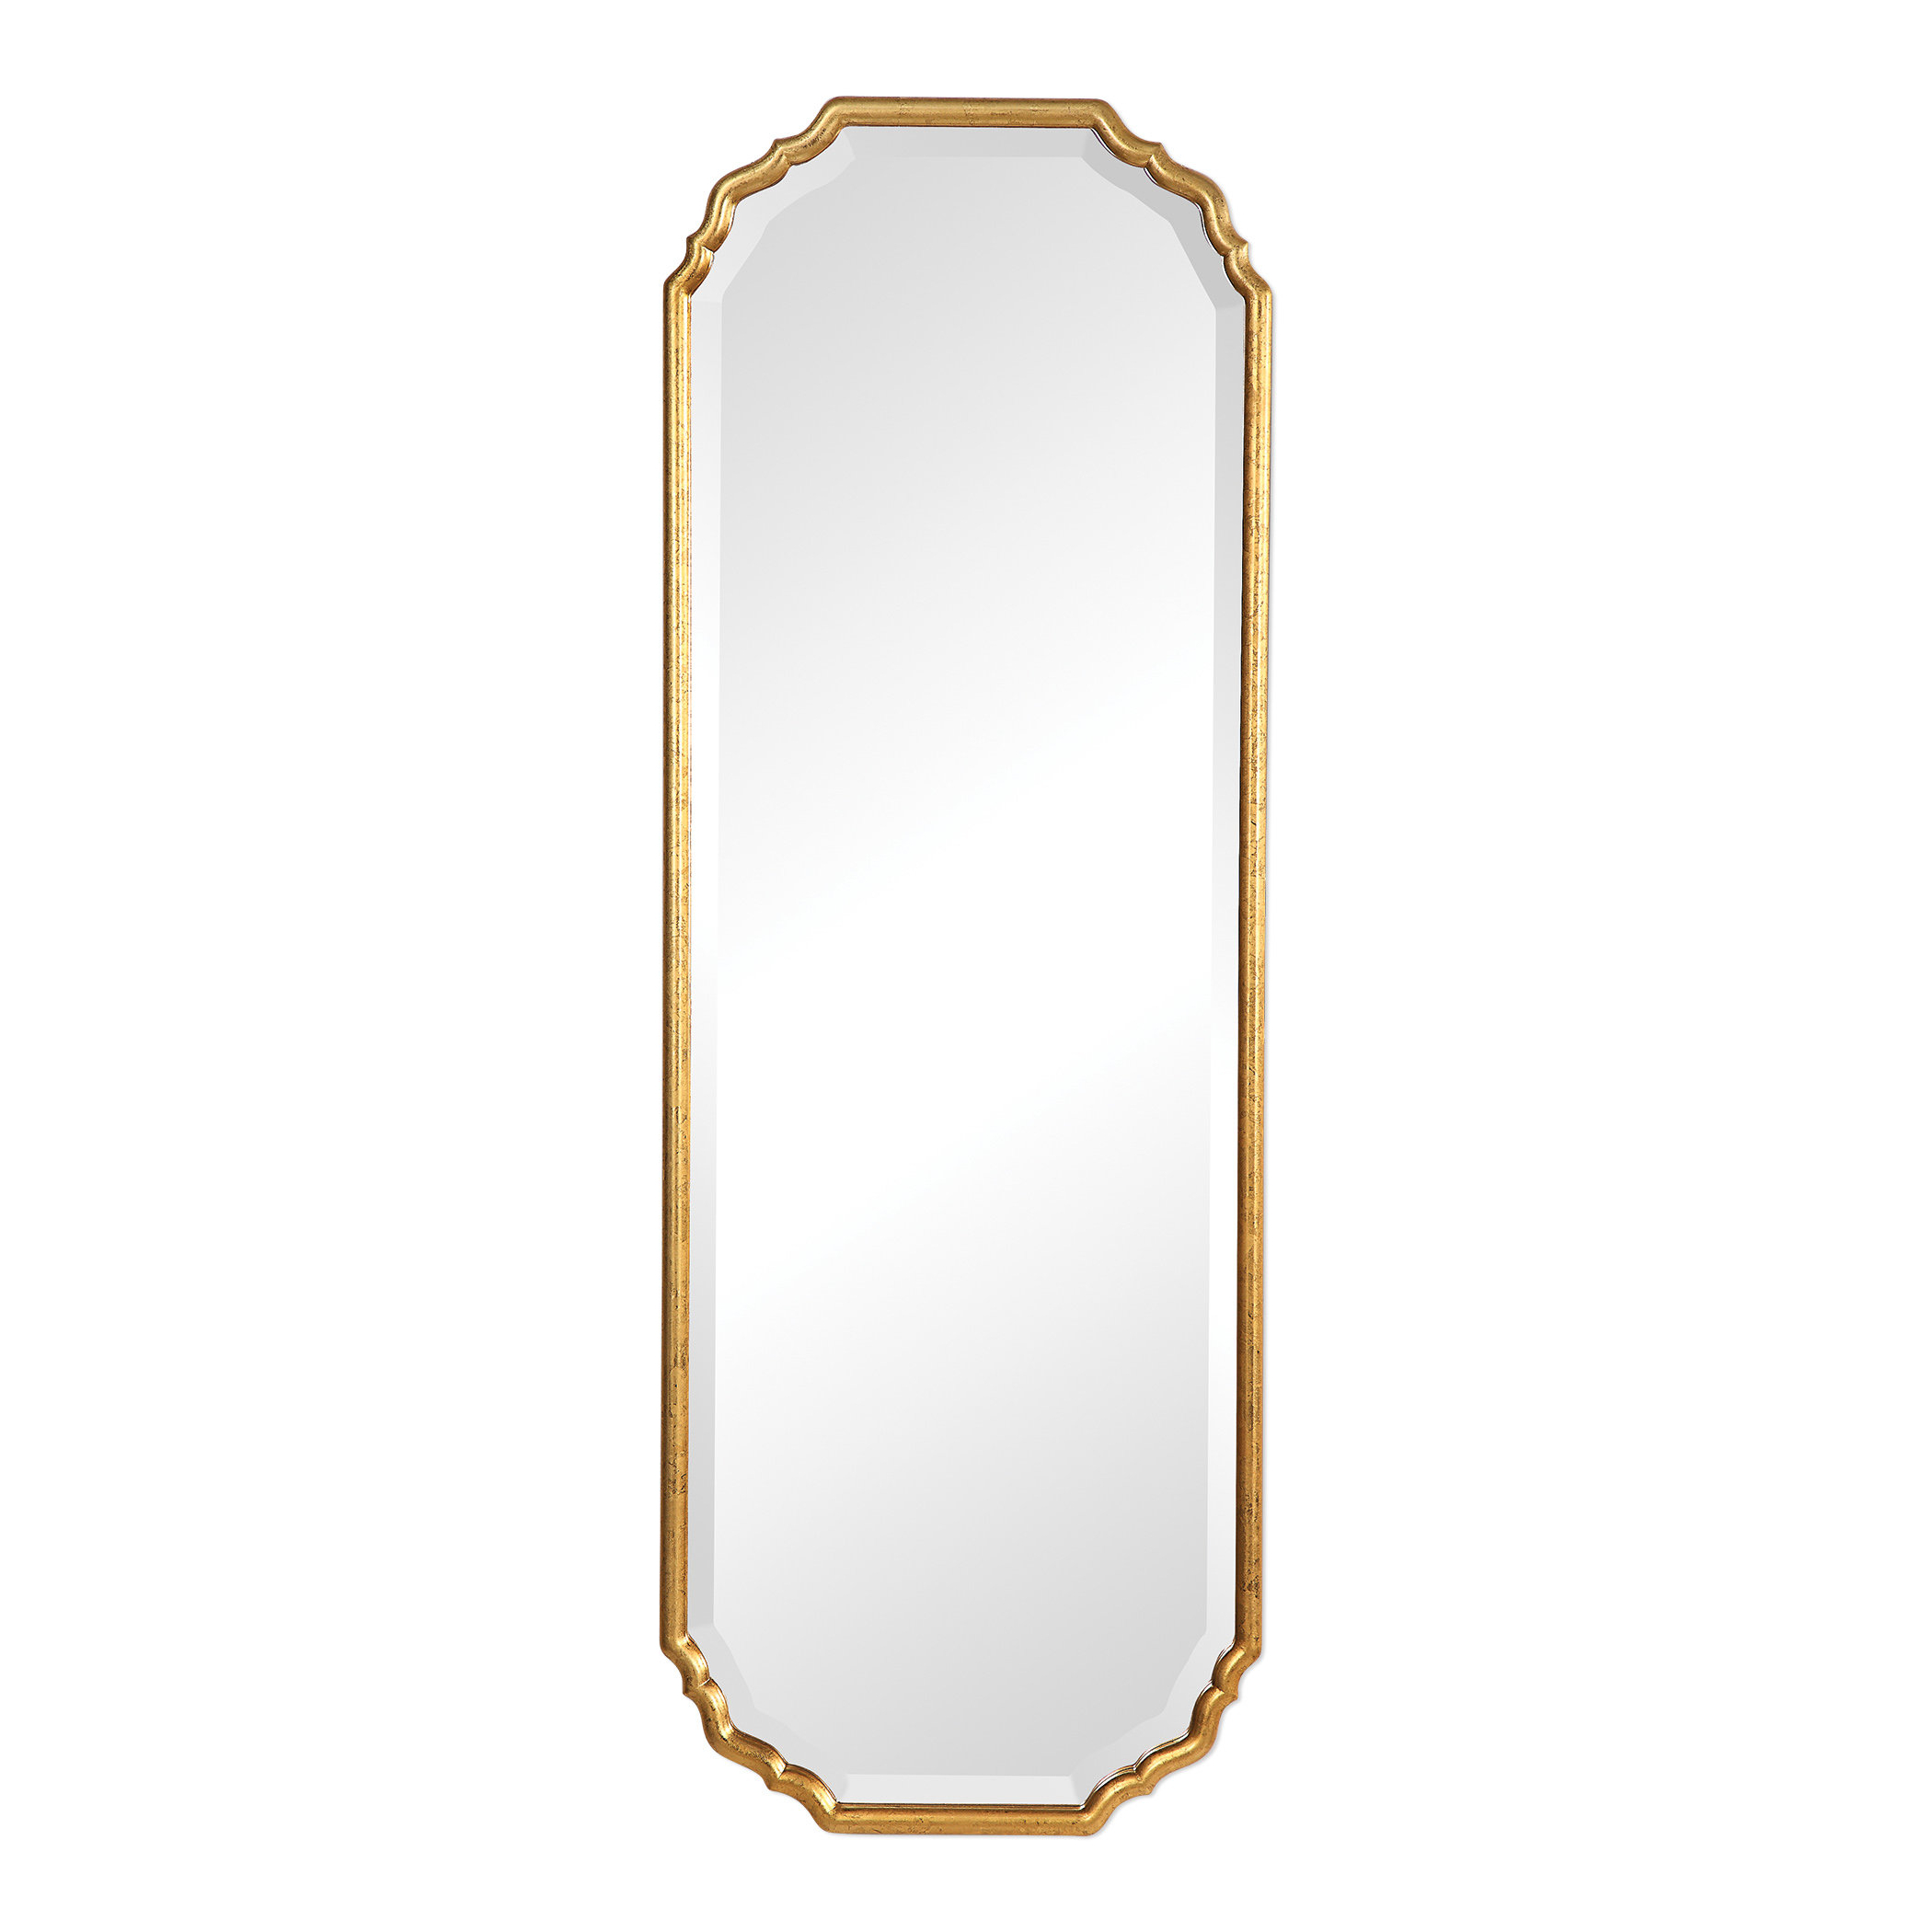 Christiano Traditional Full Length Wall Mirror Intended For Favorite Full Length Wall Mirrors (View 10 of 20)